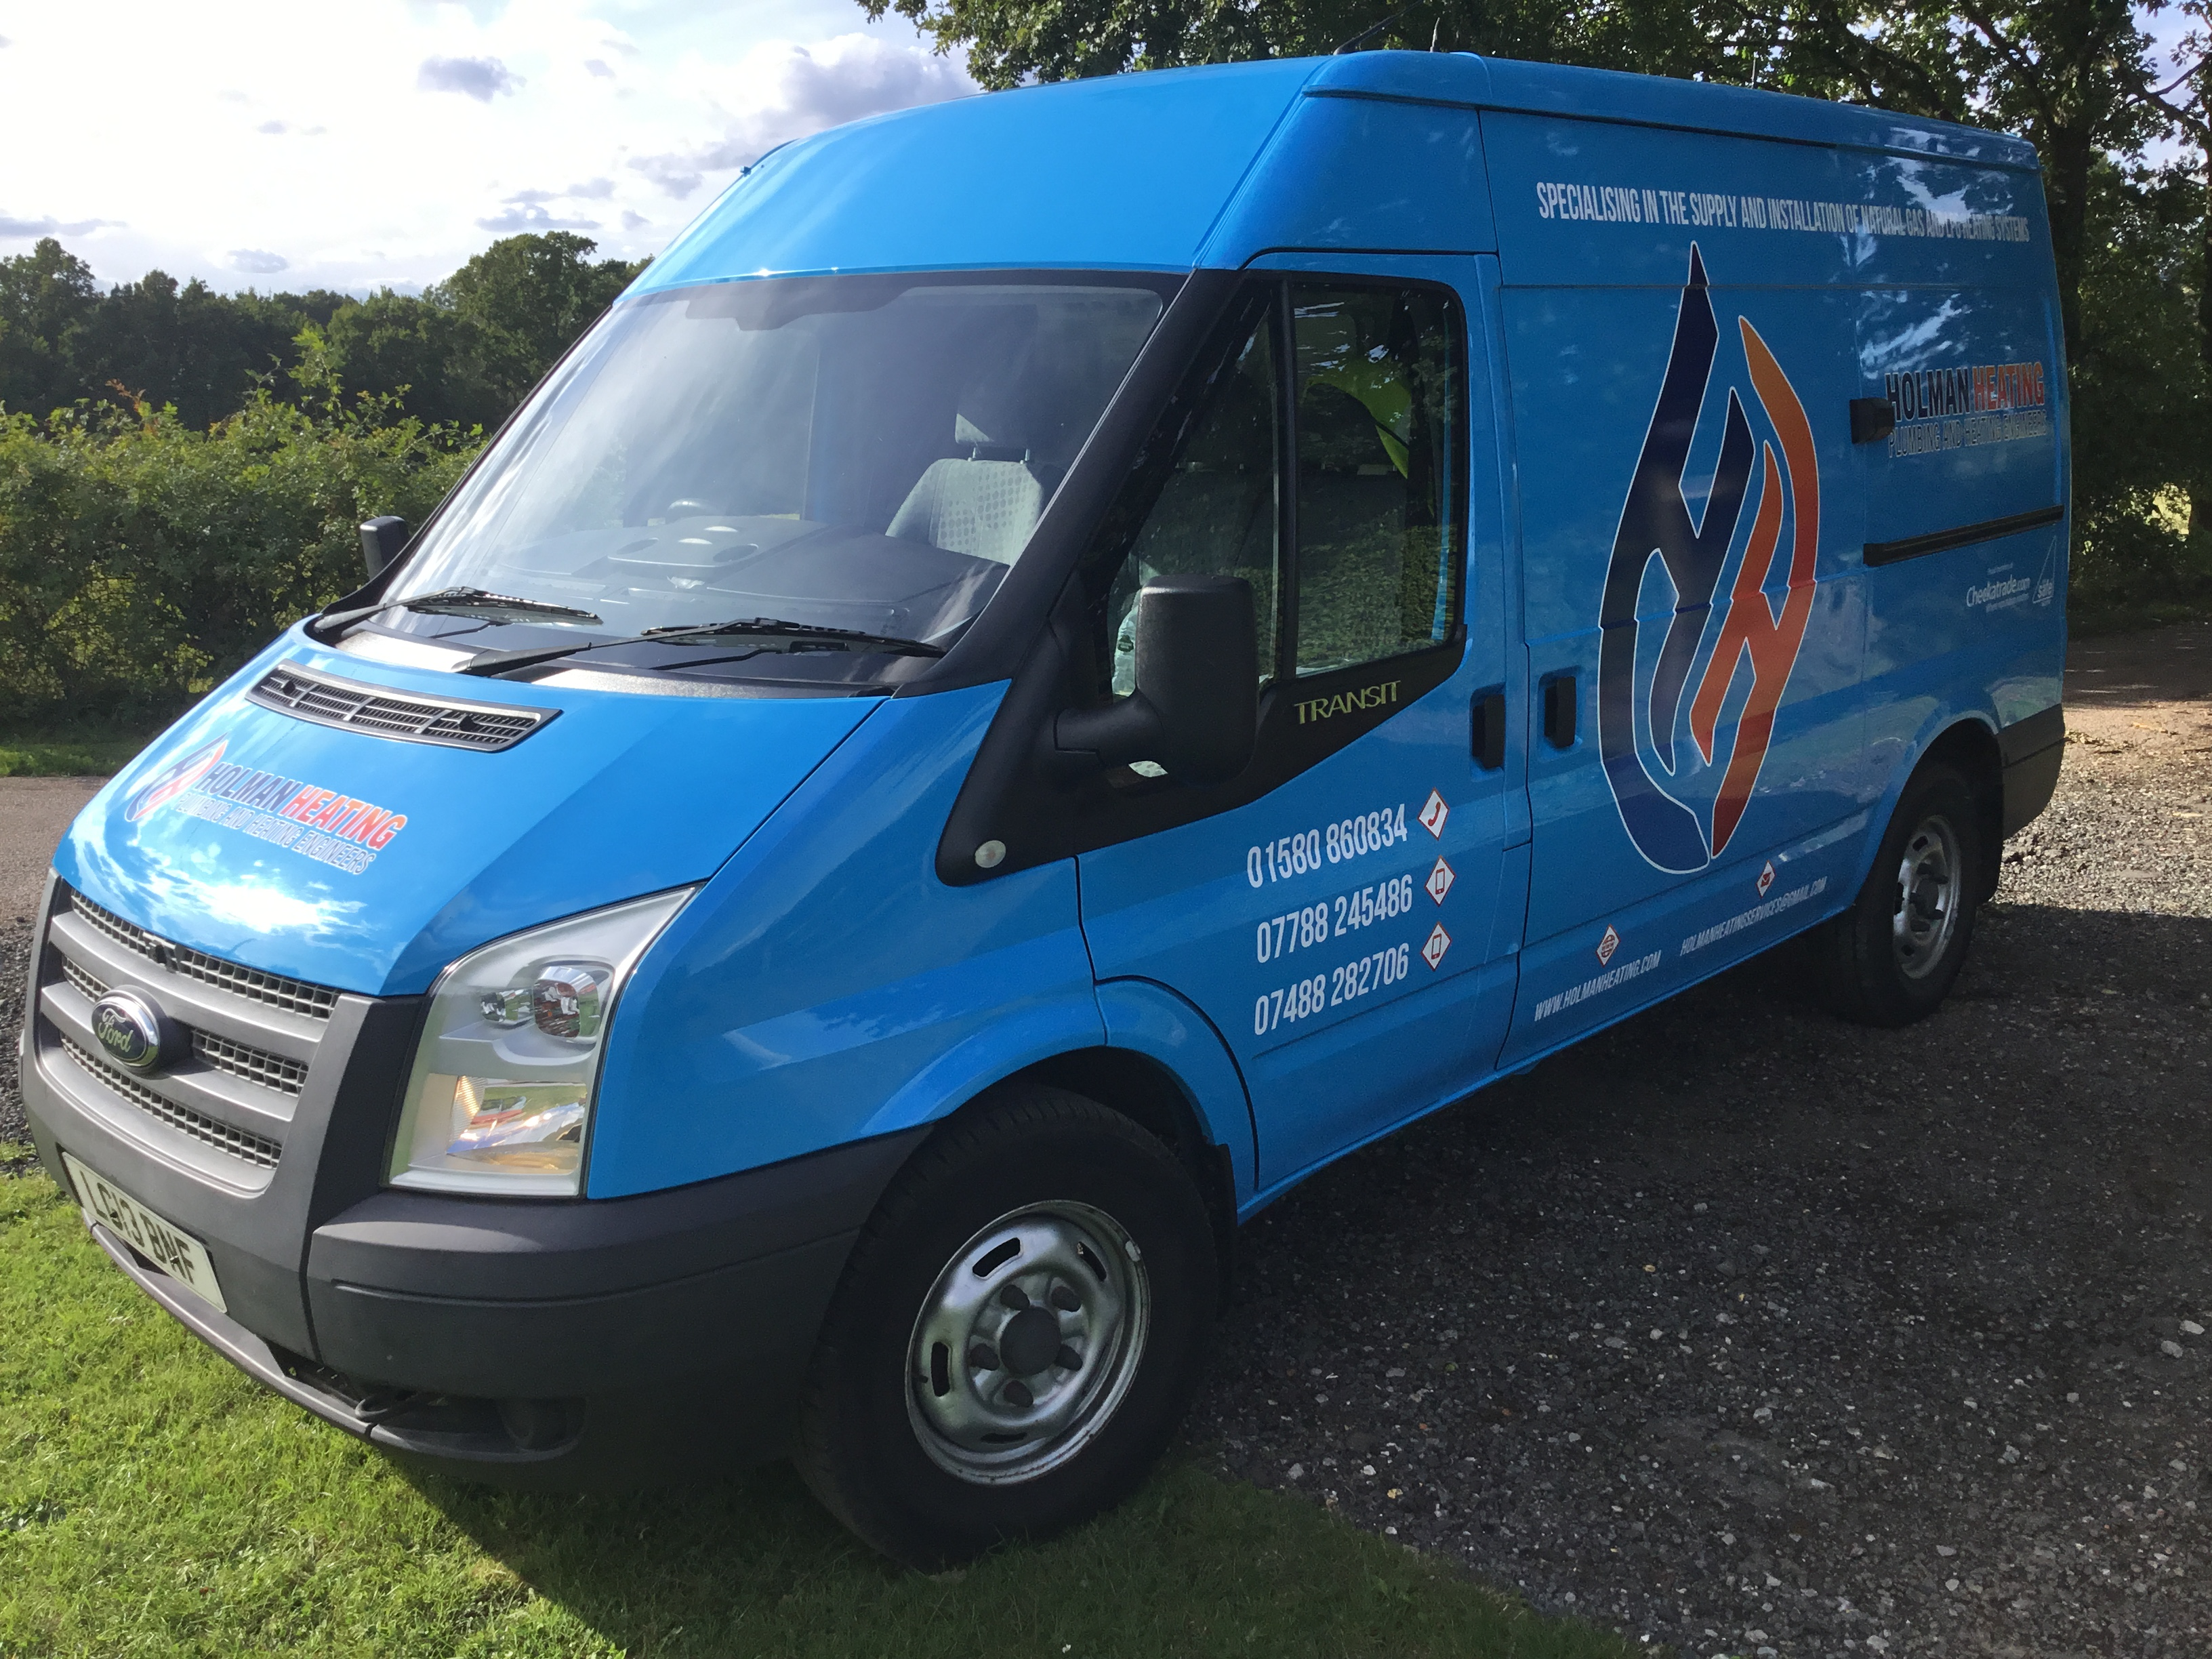 Plumber and Heating in Tubridge Wells